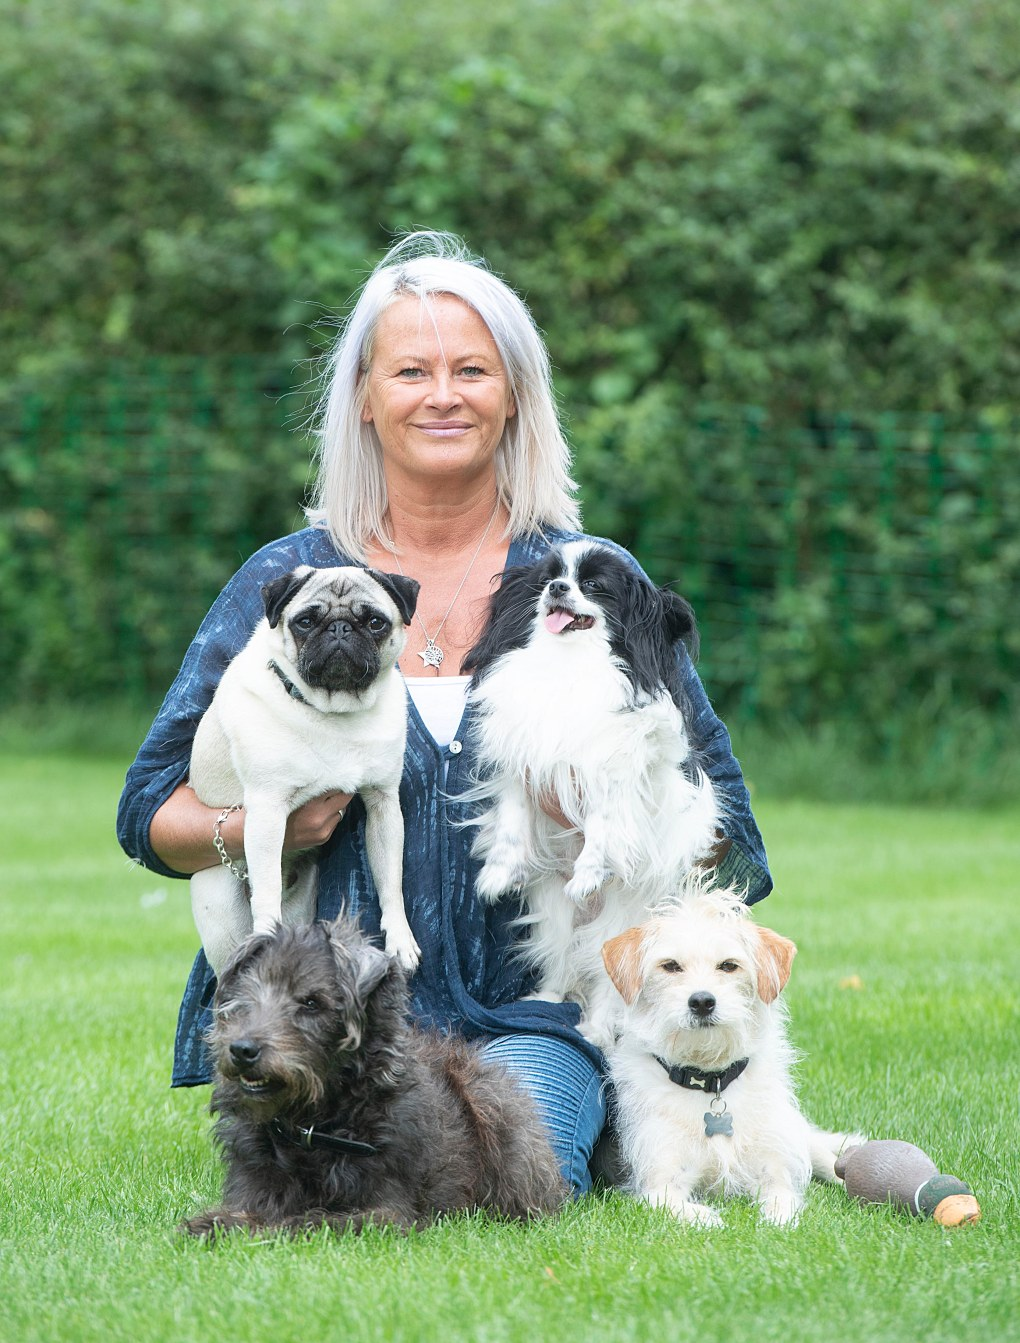 Julie's career, with credits such as Game Of Thrones, Harry Potter and 101 Dalmatians, is due to a Yorkshire Terrier rescued from a cruel puppy farm